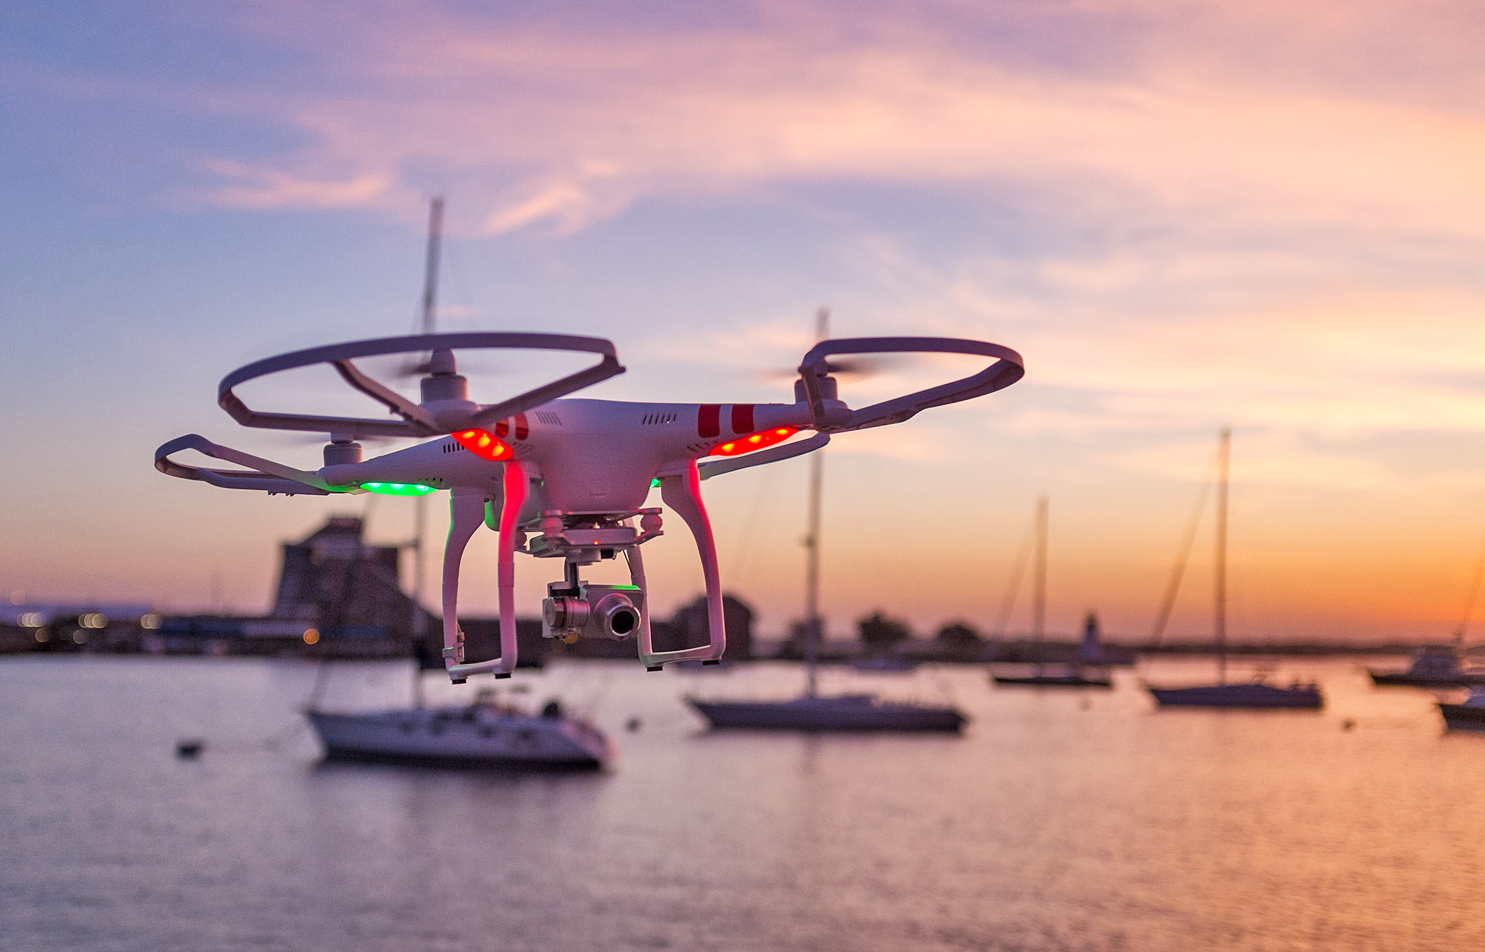 The Phantom 2 Vision+ flying camera, pictured, has been the source of several scenic web videos of the Northport landscape filmed by East Northport resident Dave Tuohy over the last several months.